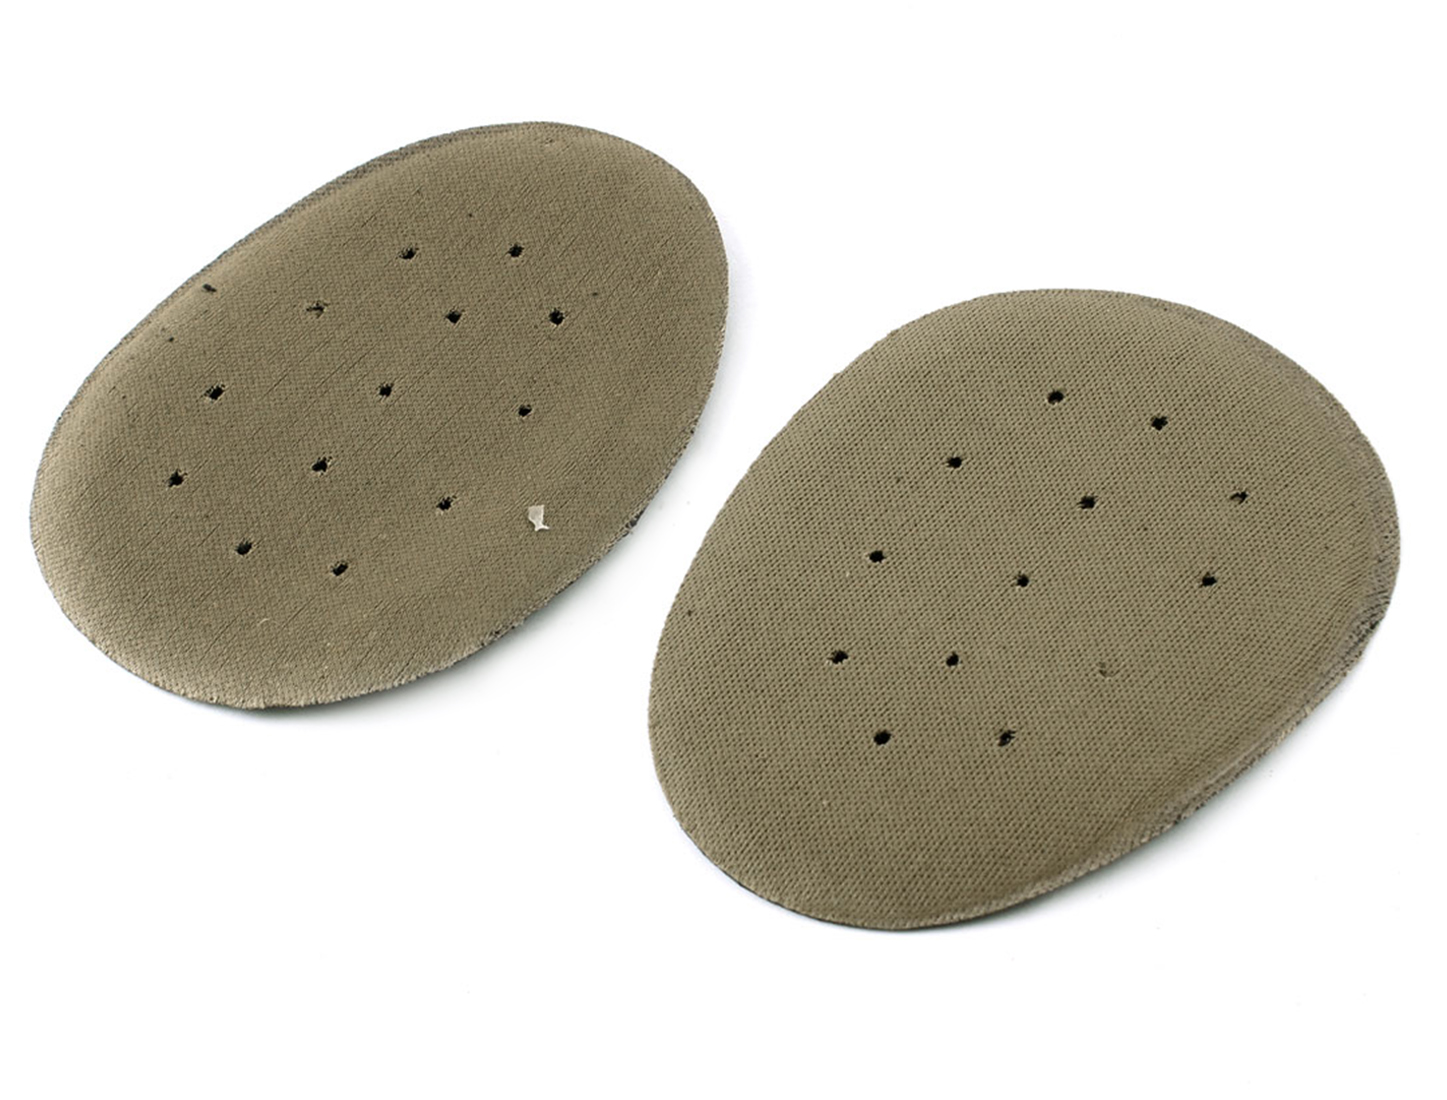 Lady Brown Foam Hole Design Shoes Half Insoles Metatarsal Cushion 2pcs